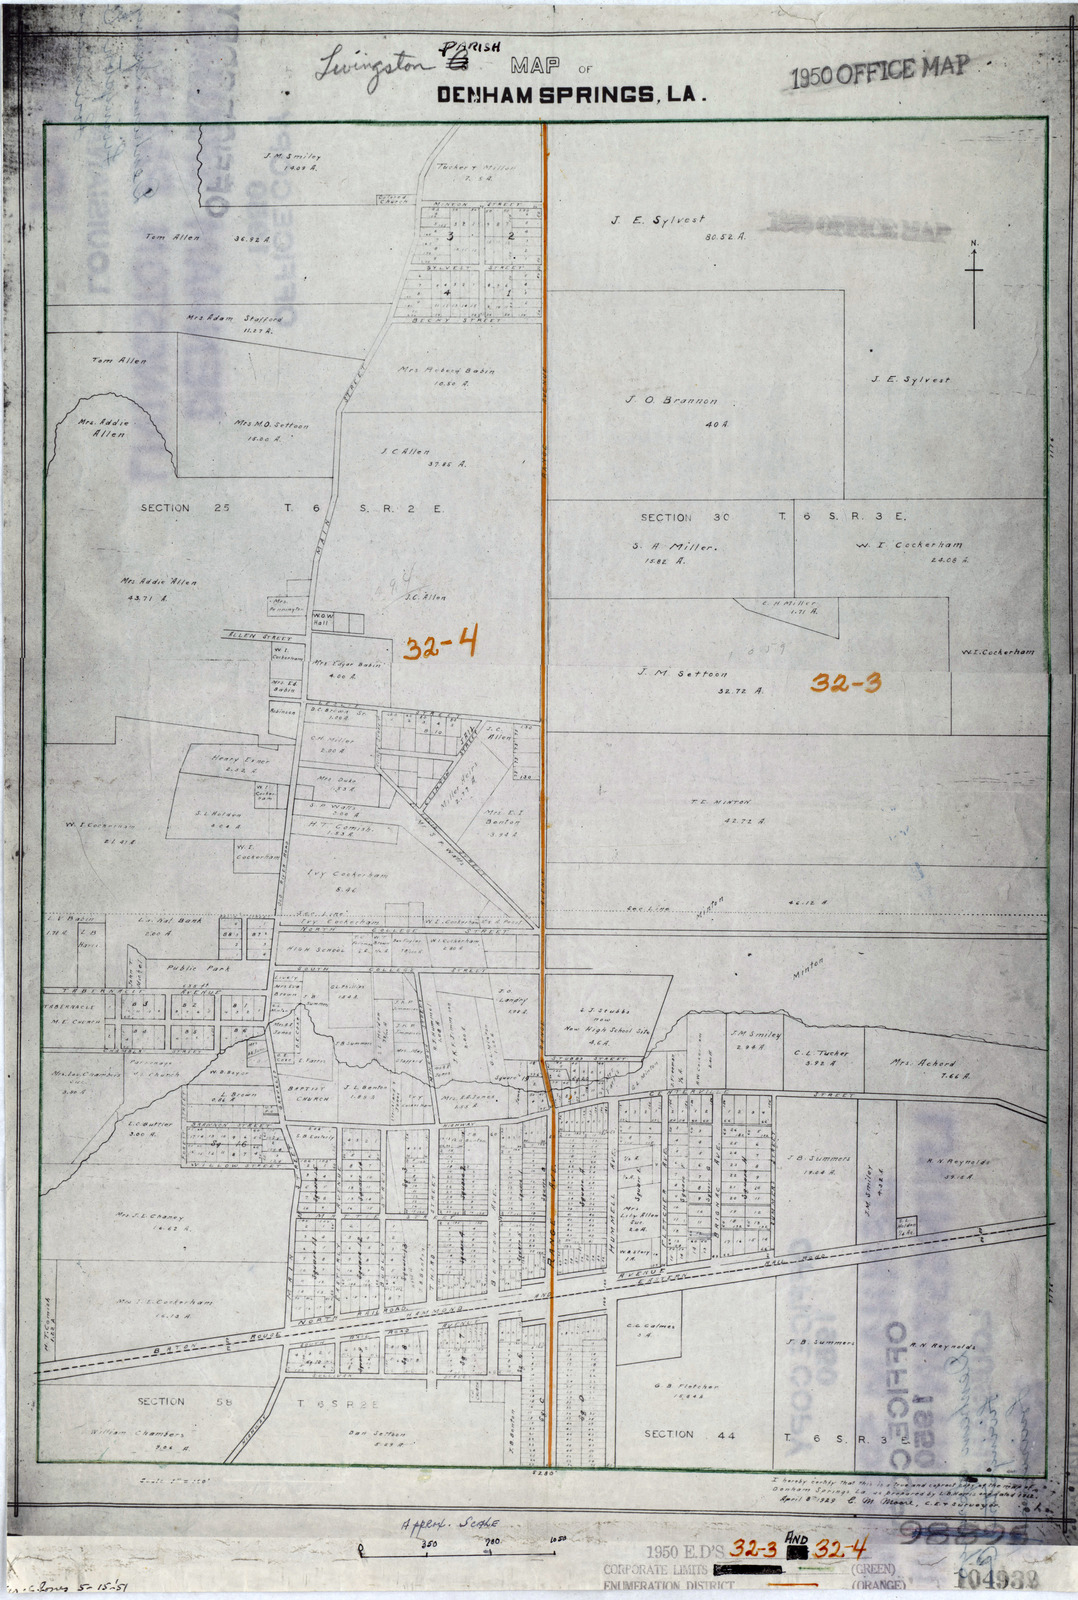 1950 Census Enumeration District Maps - Louisiana (LA ... on head of island la map, slidell la map, scott la map, de ridder la map, st. martinville la map, camp beauregard la map, west feliciana parish la map, franklinton la map, saint francisville la map, saint amant la map, metairie la map, florida la map, algiers la map, lafayette la map, farmerville la map, lake pontchartrain la map, st. francisville la map, tickfaw la map, washington la map, napoleonville la map,